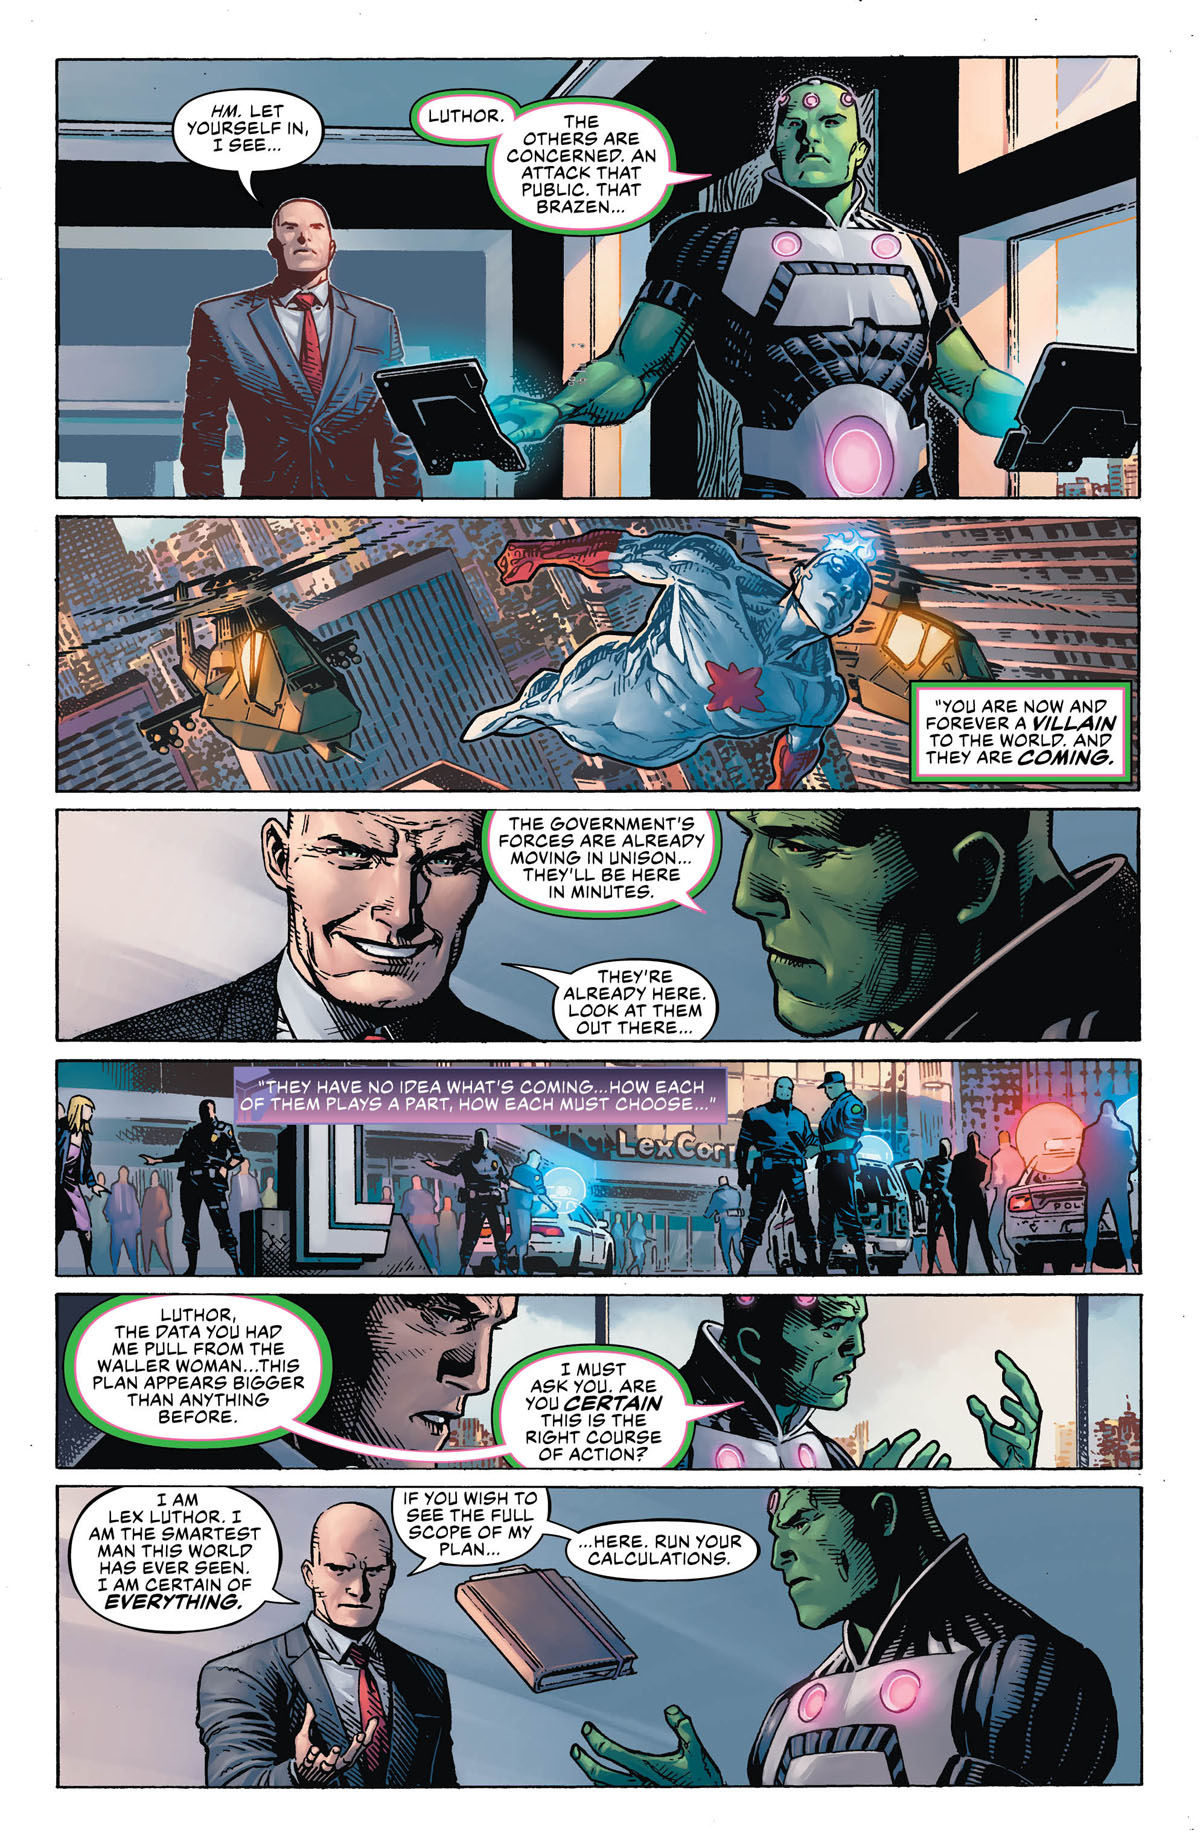 DC's Year of the Villain #1 page 4